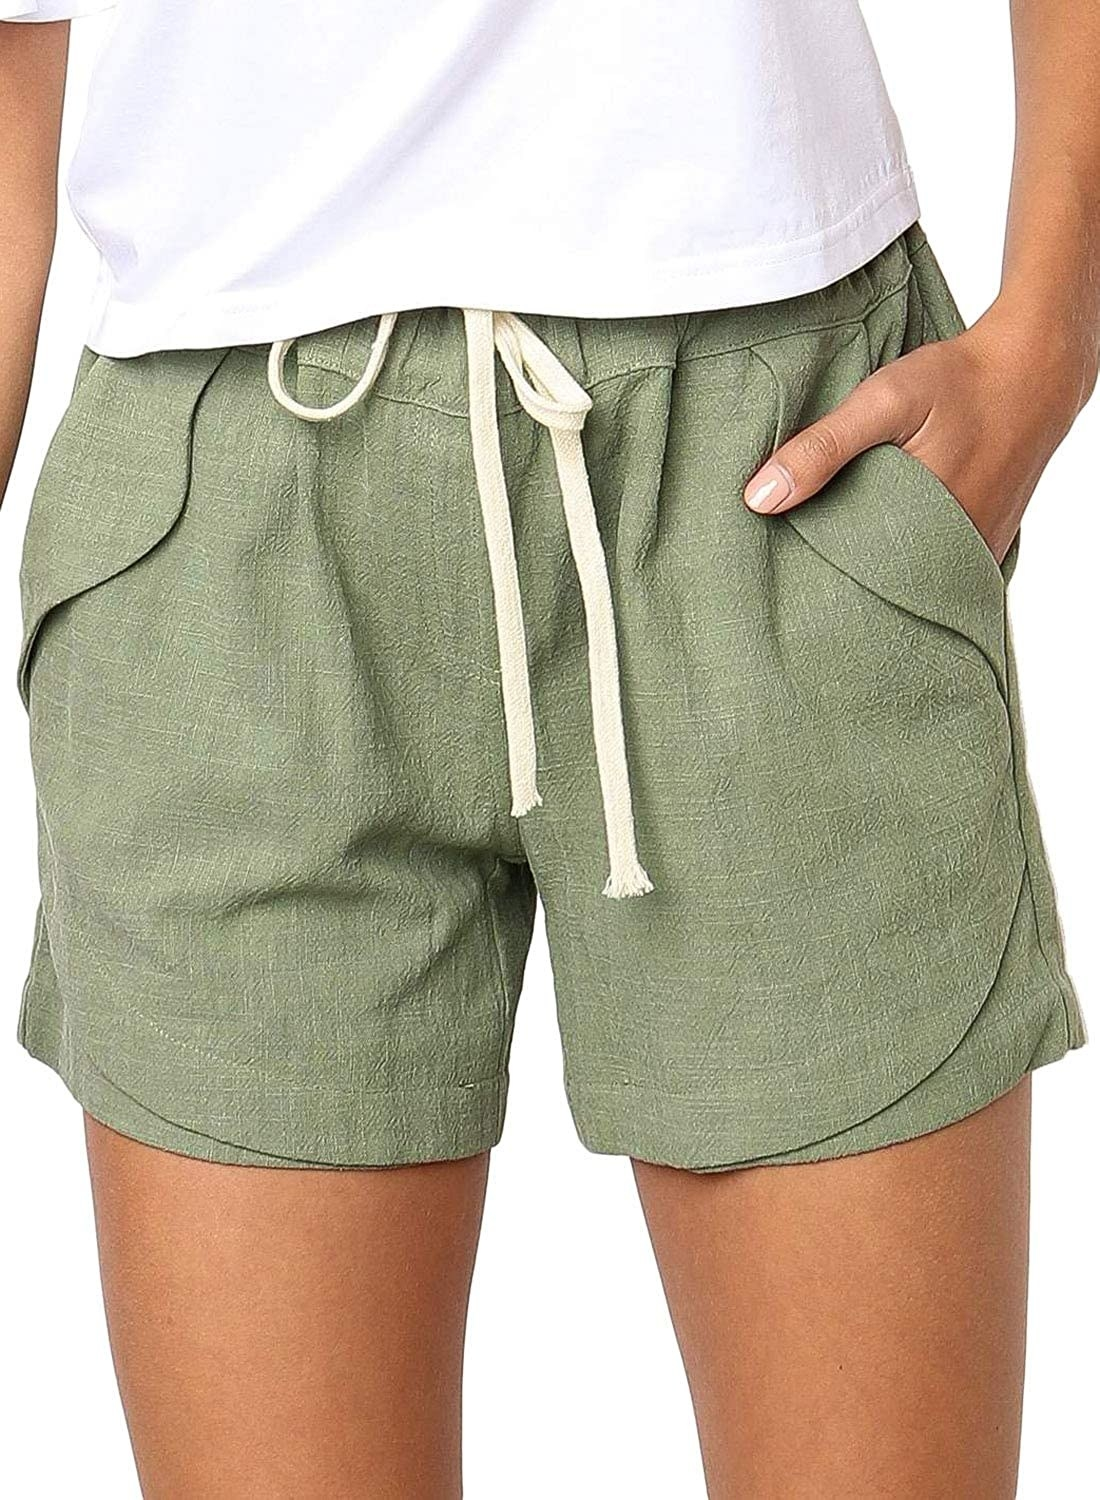 The shorts with a drawstring waist and pockets in green